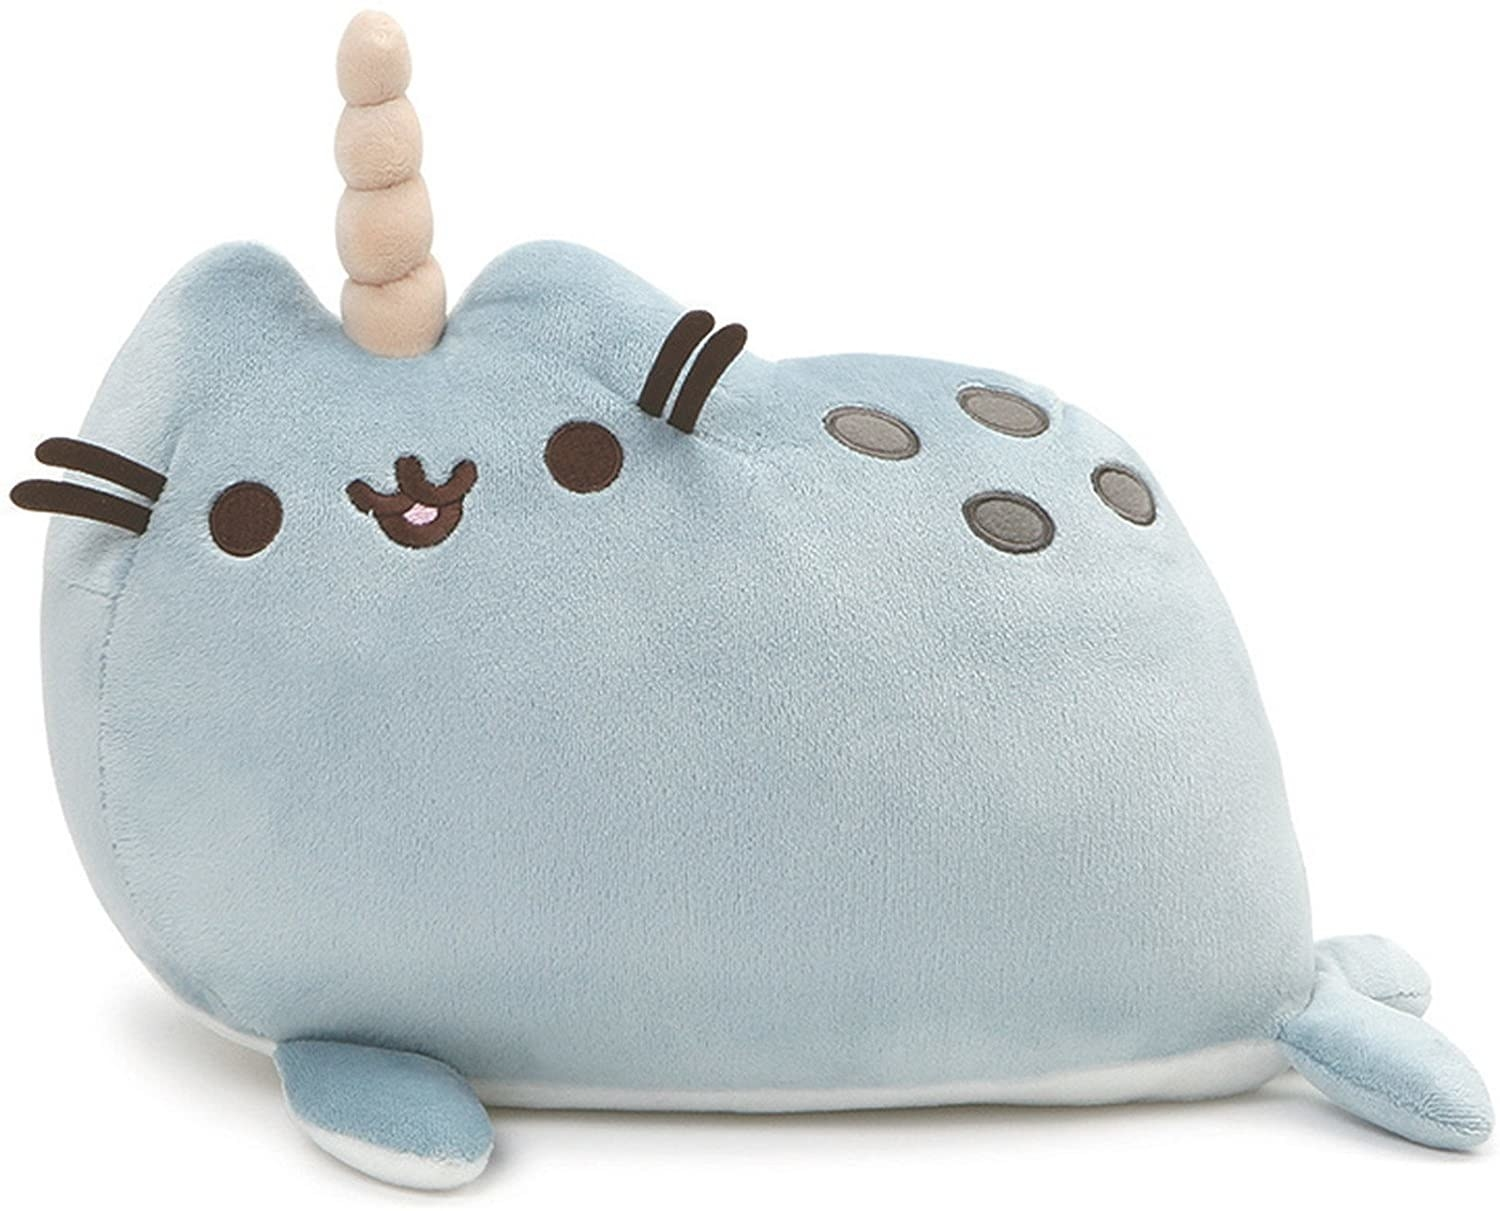 The plush, which has a narwhal horn and body but a Pusheen face, ears, and whiskers